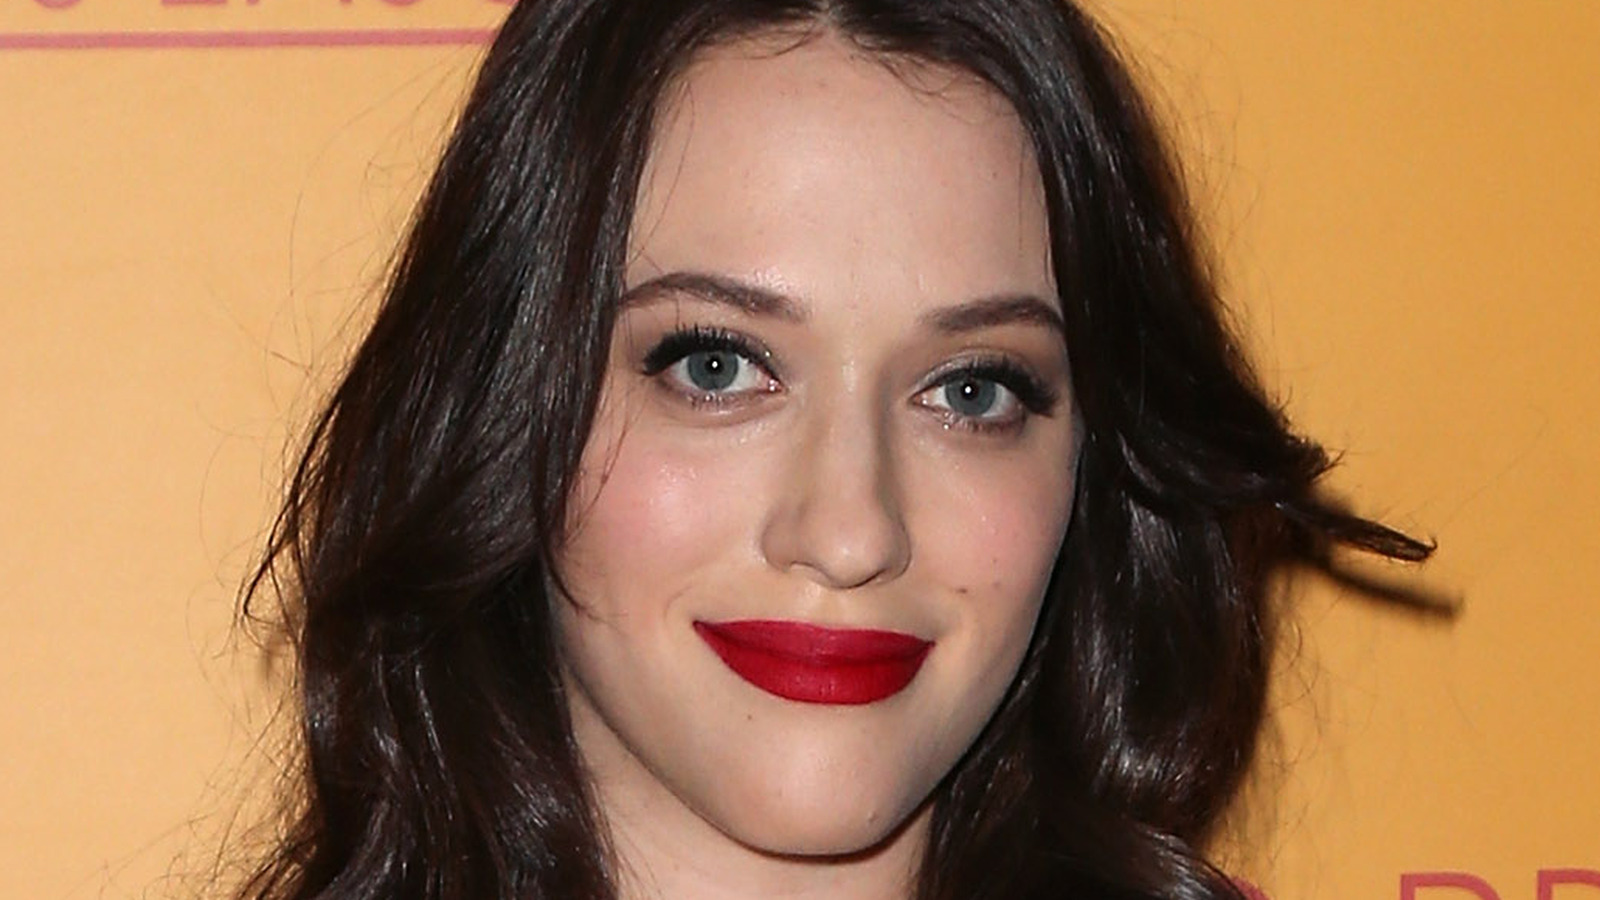 The Transformation Of Kat Dennings From 9 To 35 Years Old